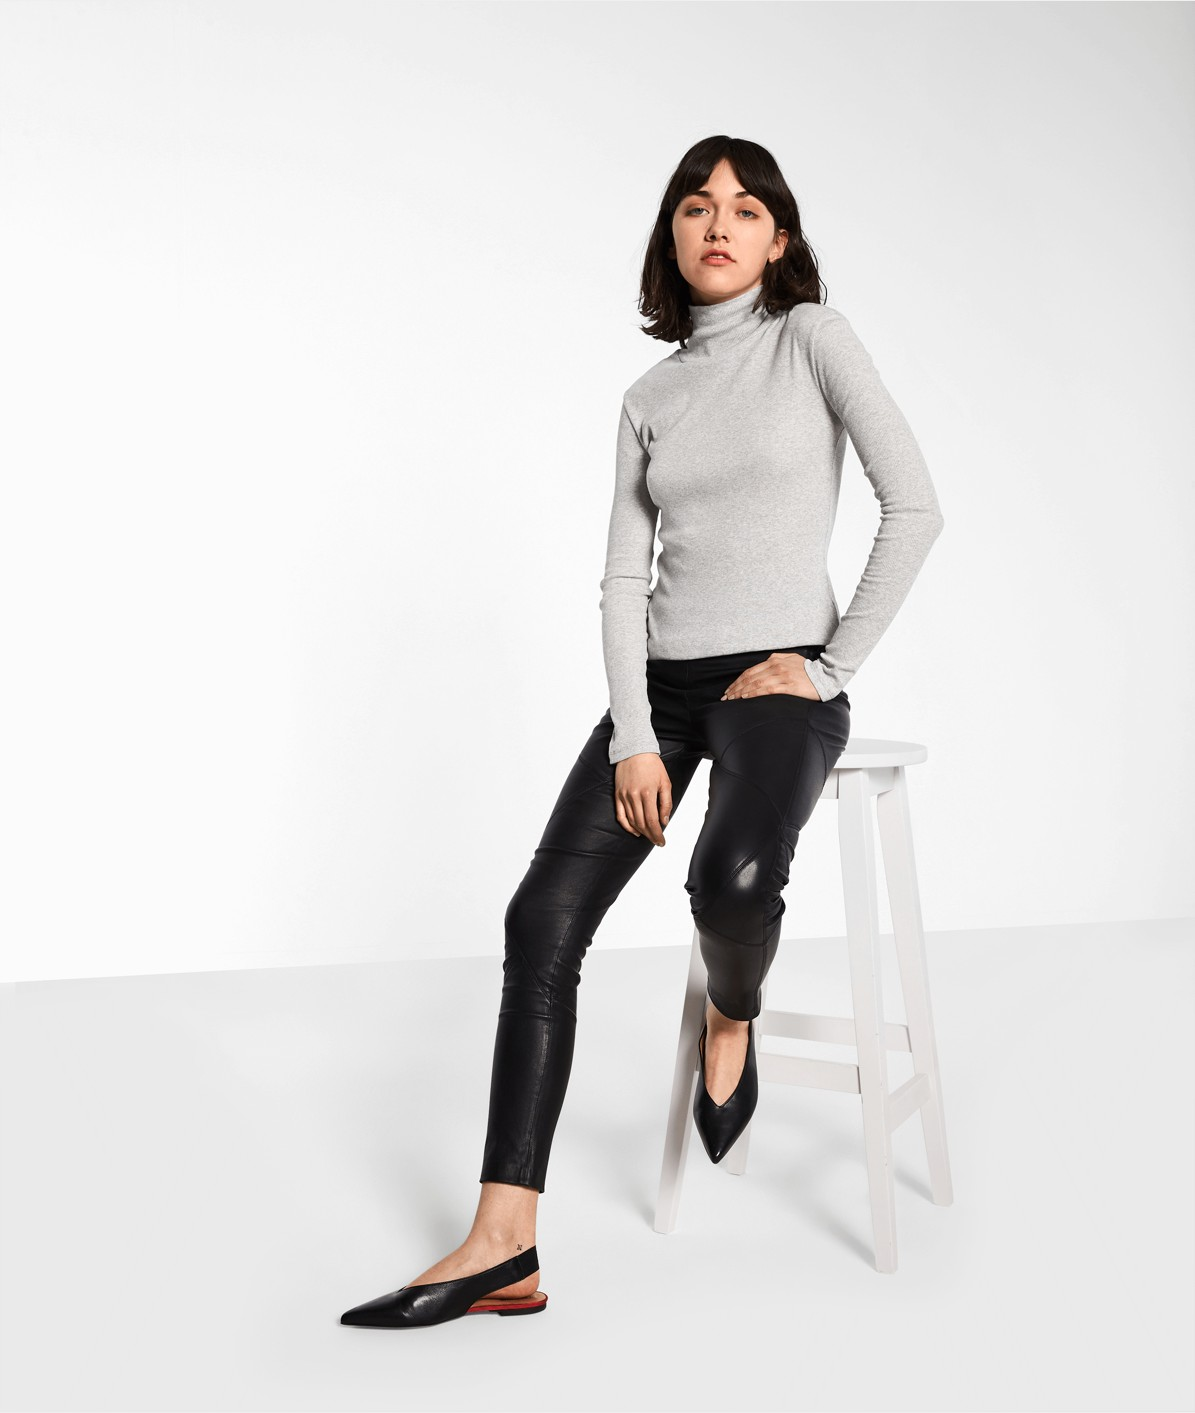 Polo neck top from liebeskind